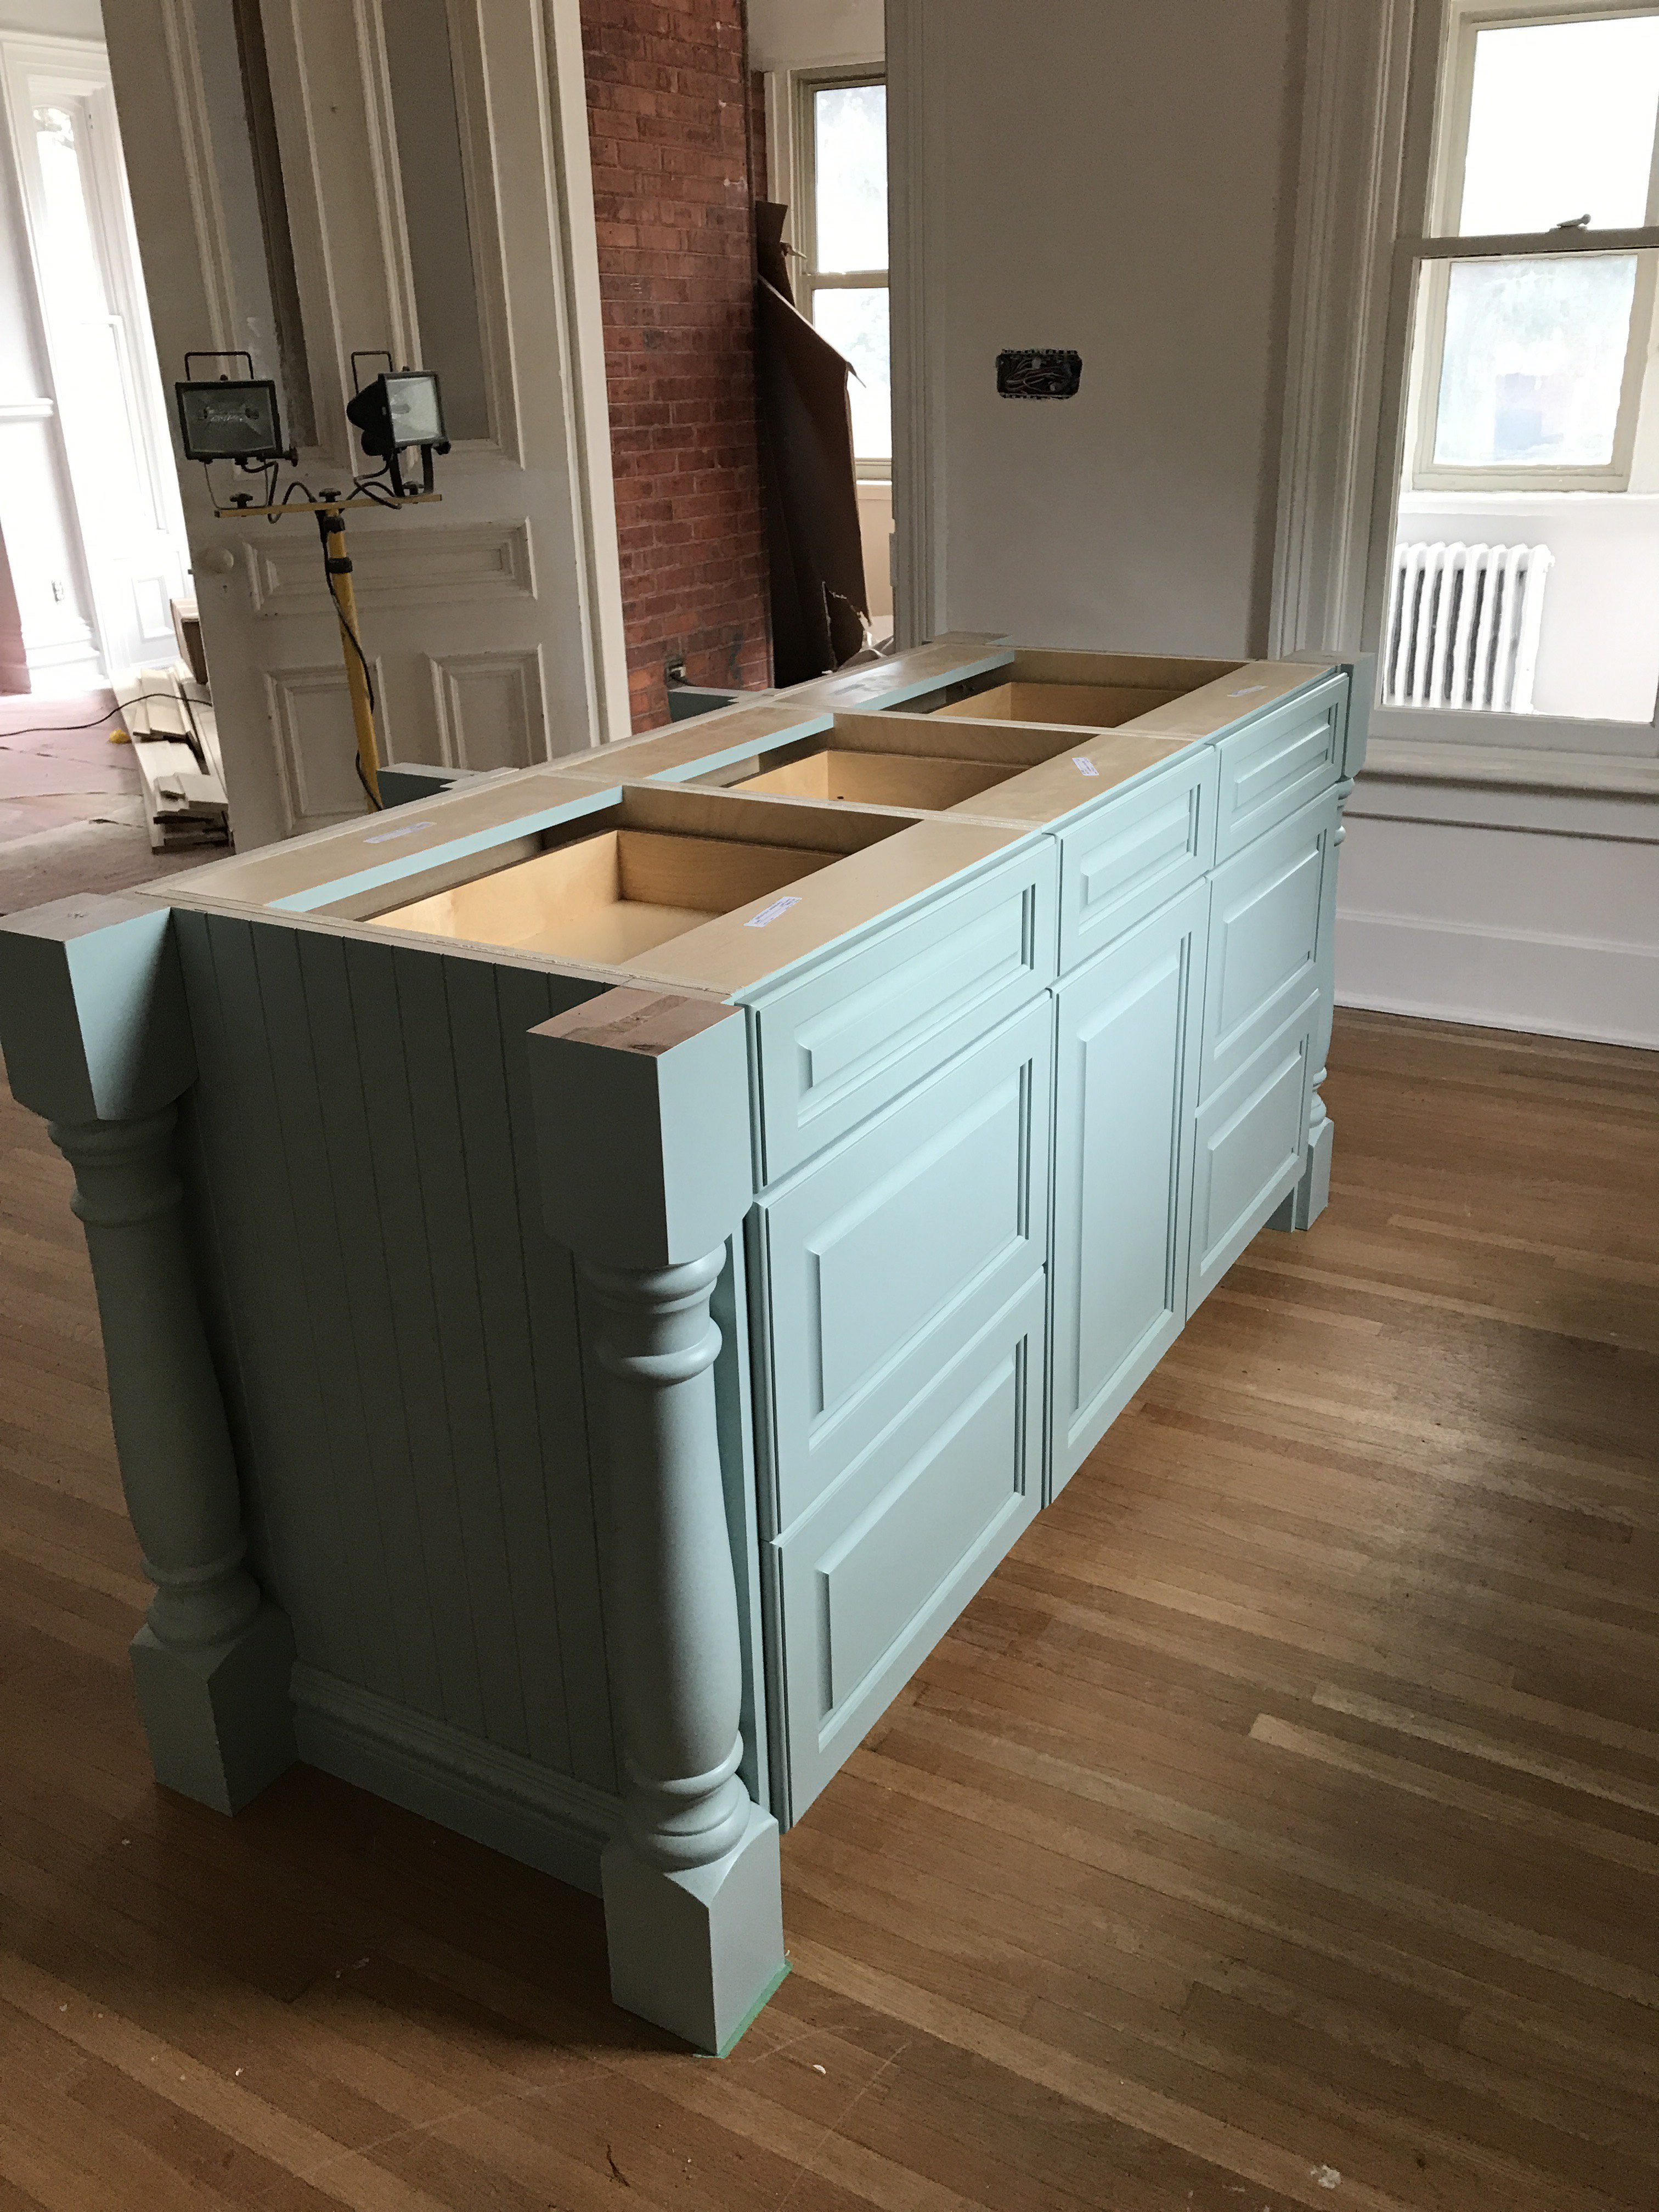 colourful kitchen cabinet install edgecomb gray wythe blue - The ...